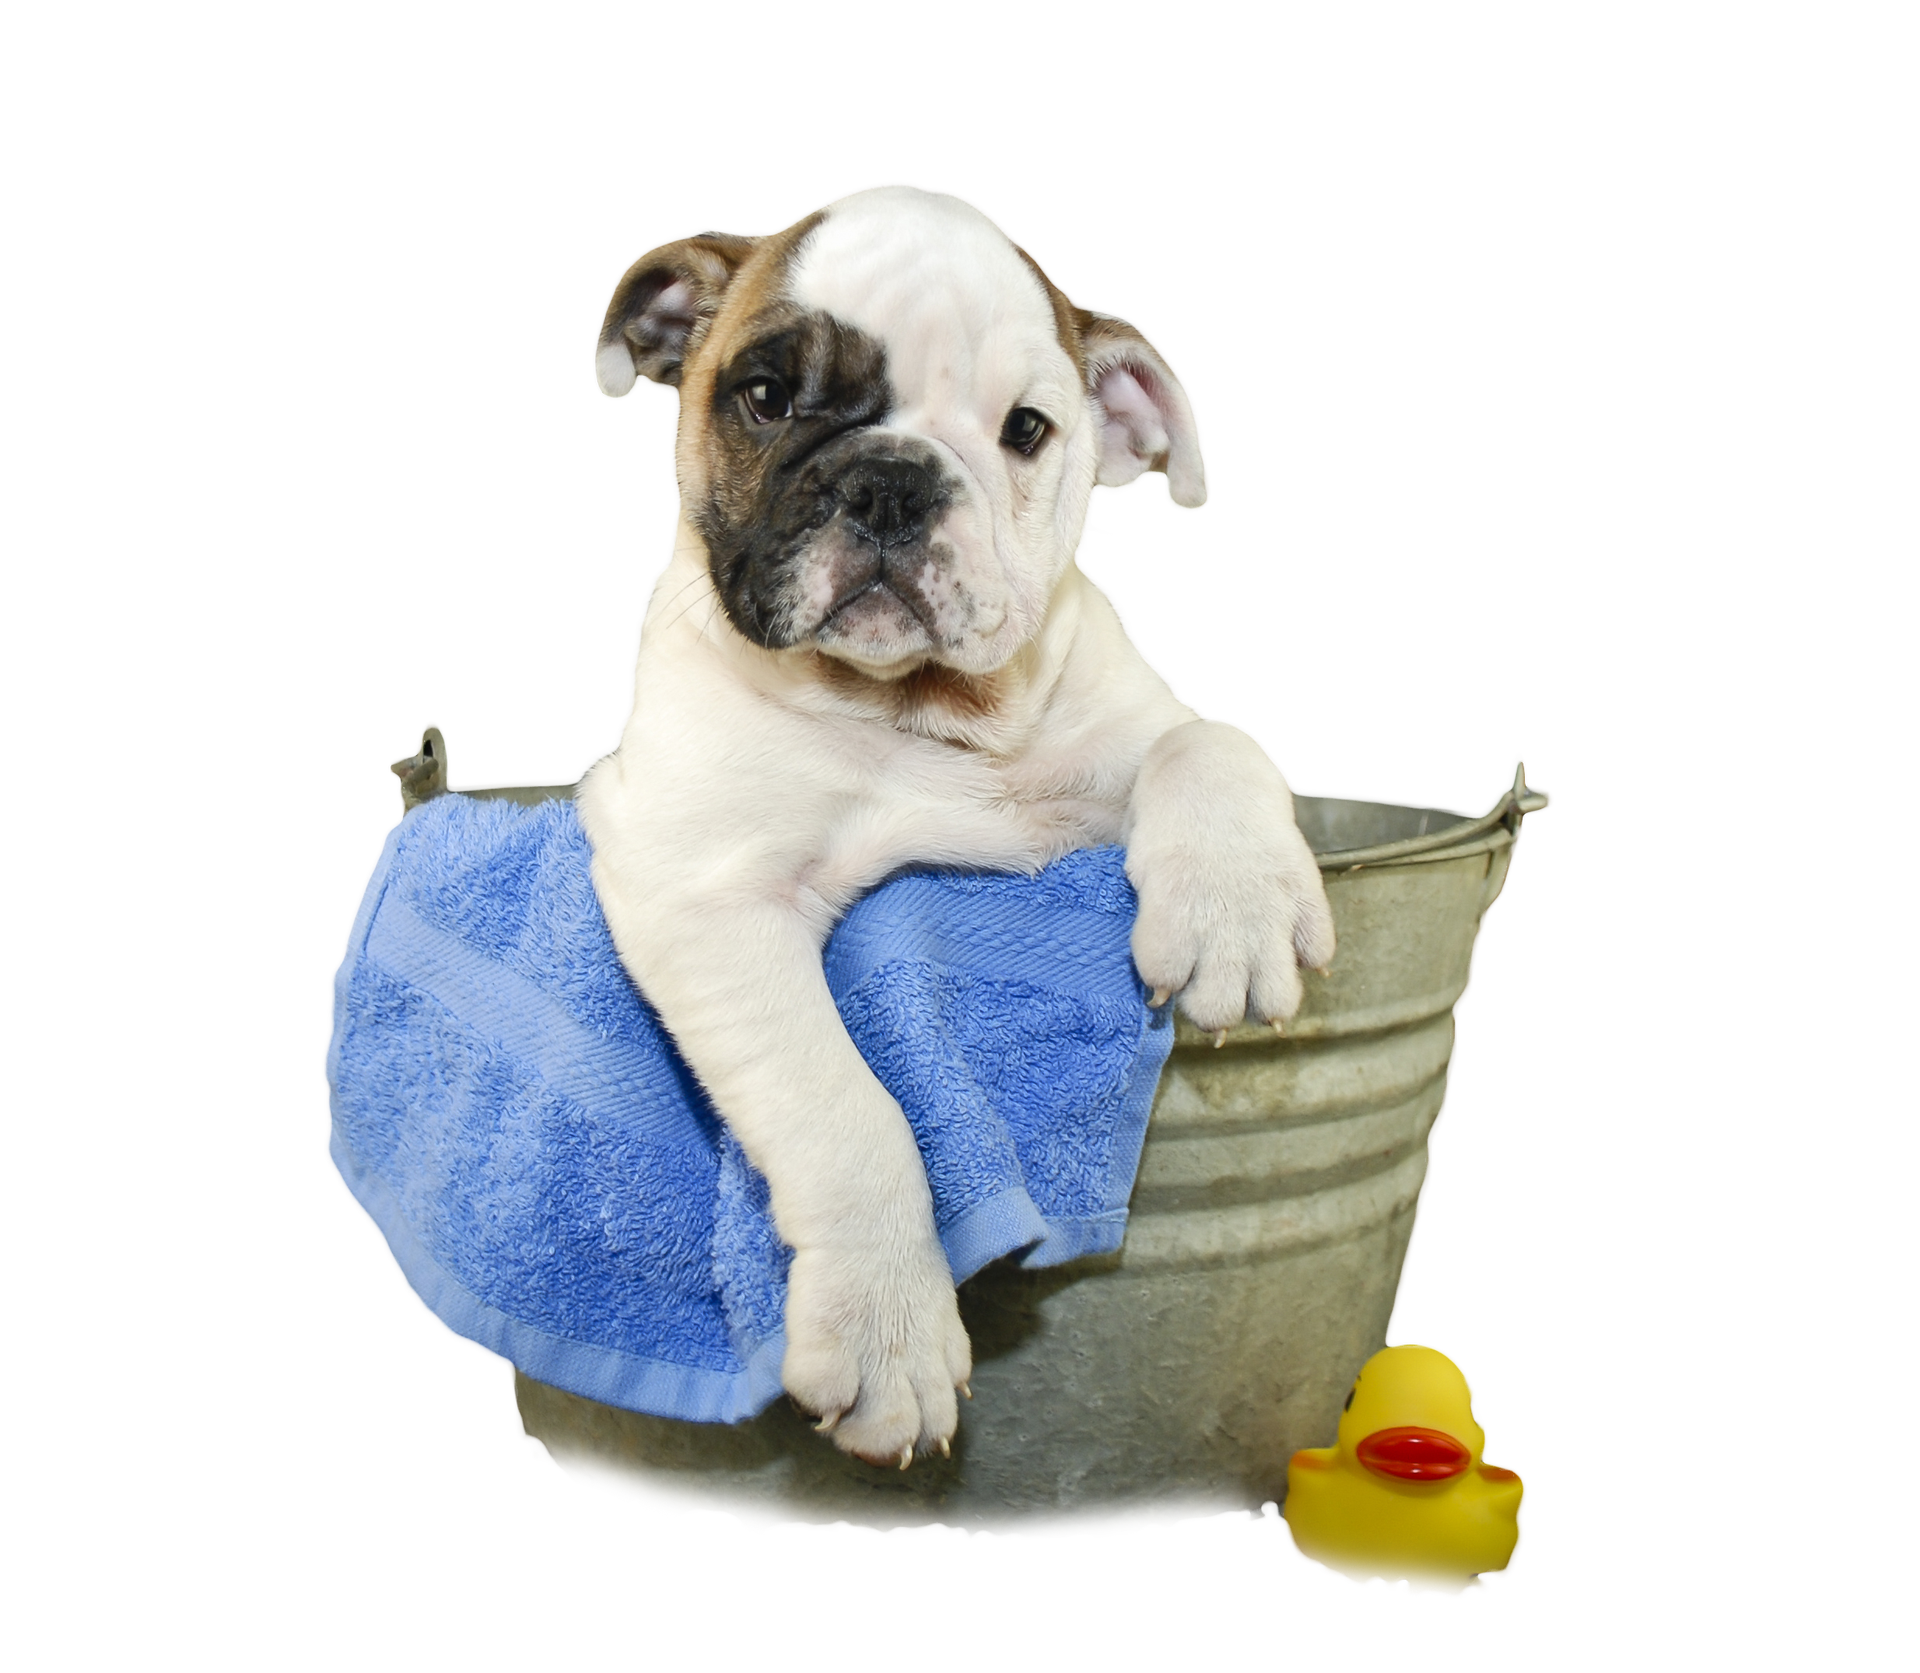 Dog bathing clipart jpg black and white Dog Bath PNG Transparent Dog Bath.PNG Images. | PlusPNG jpg black and white